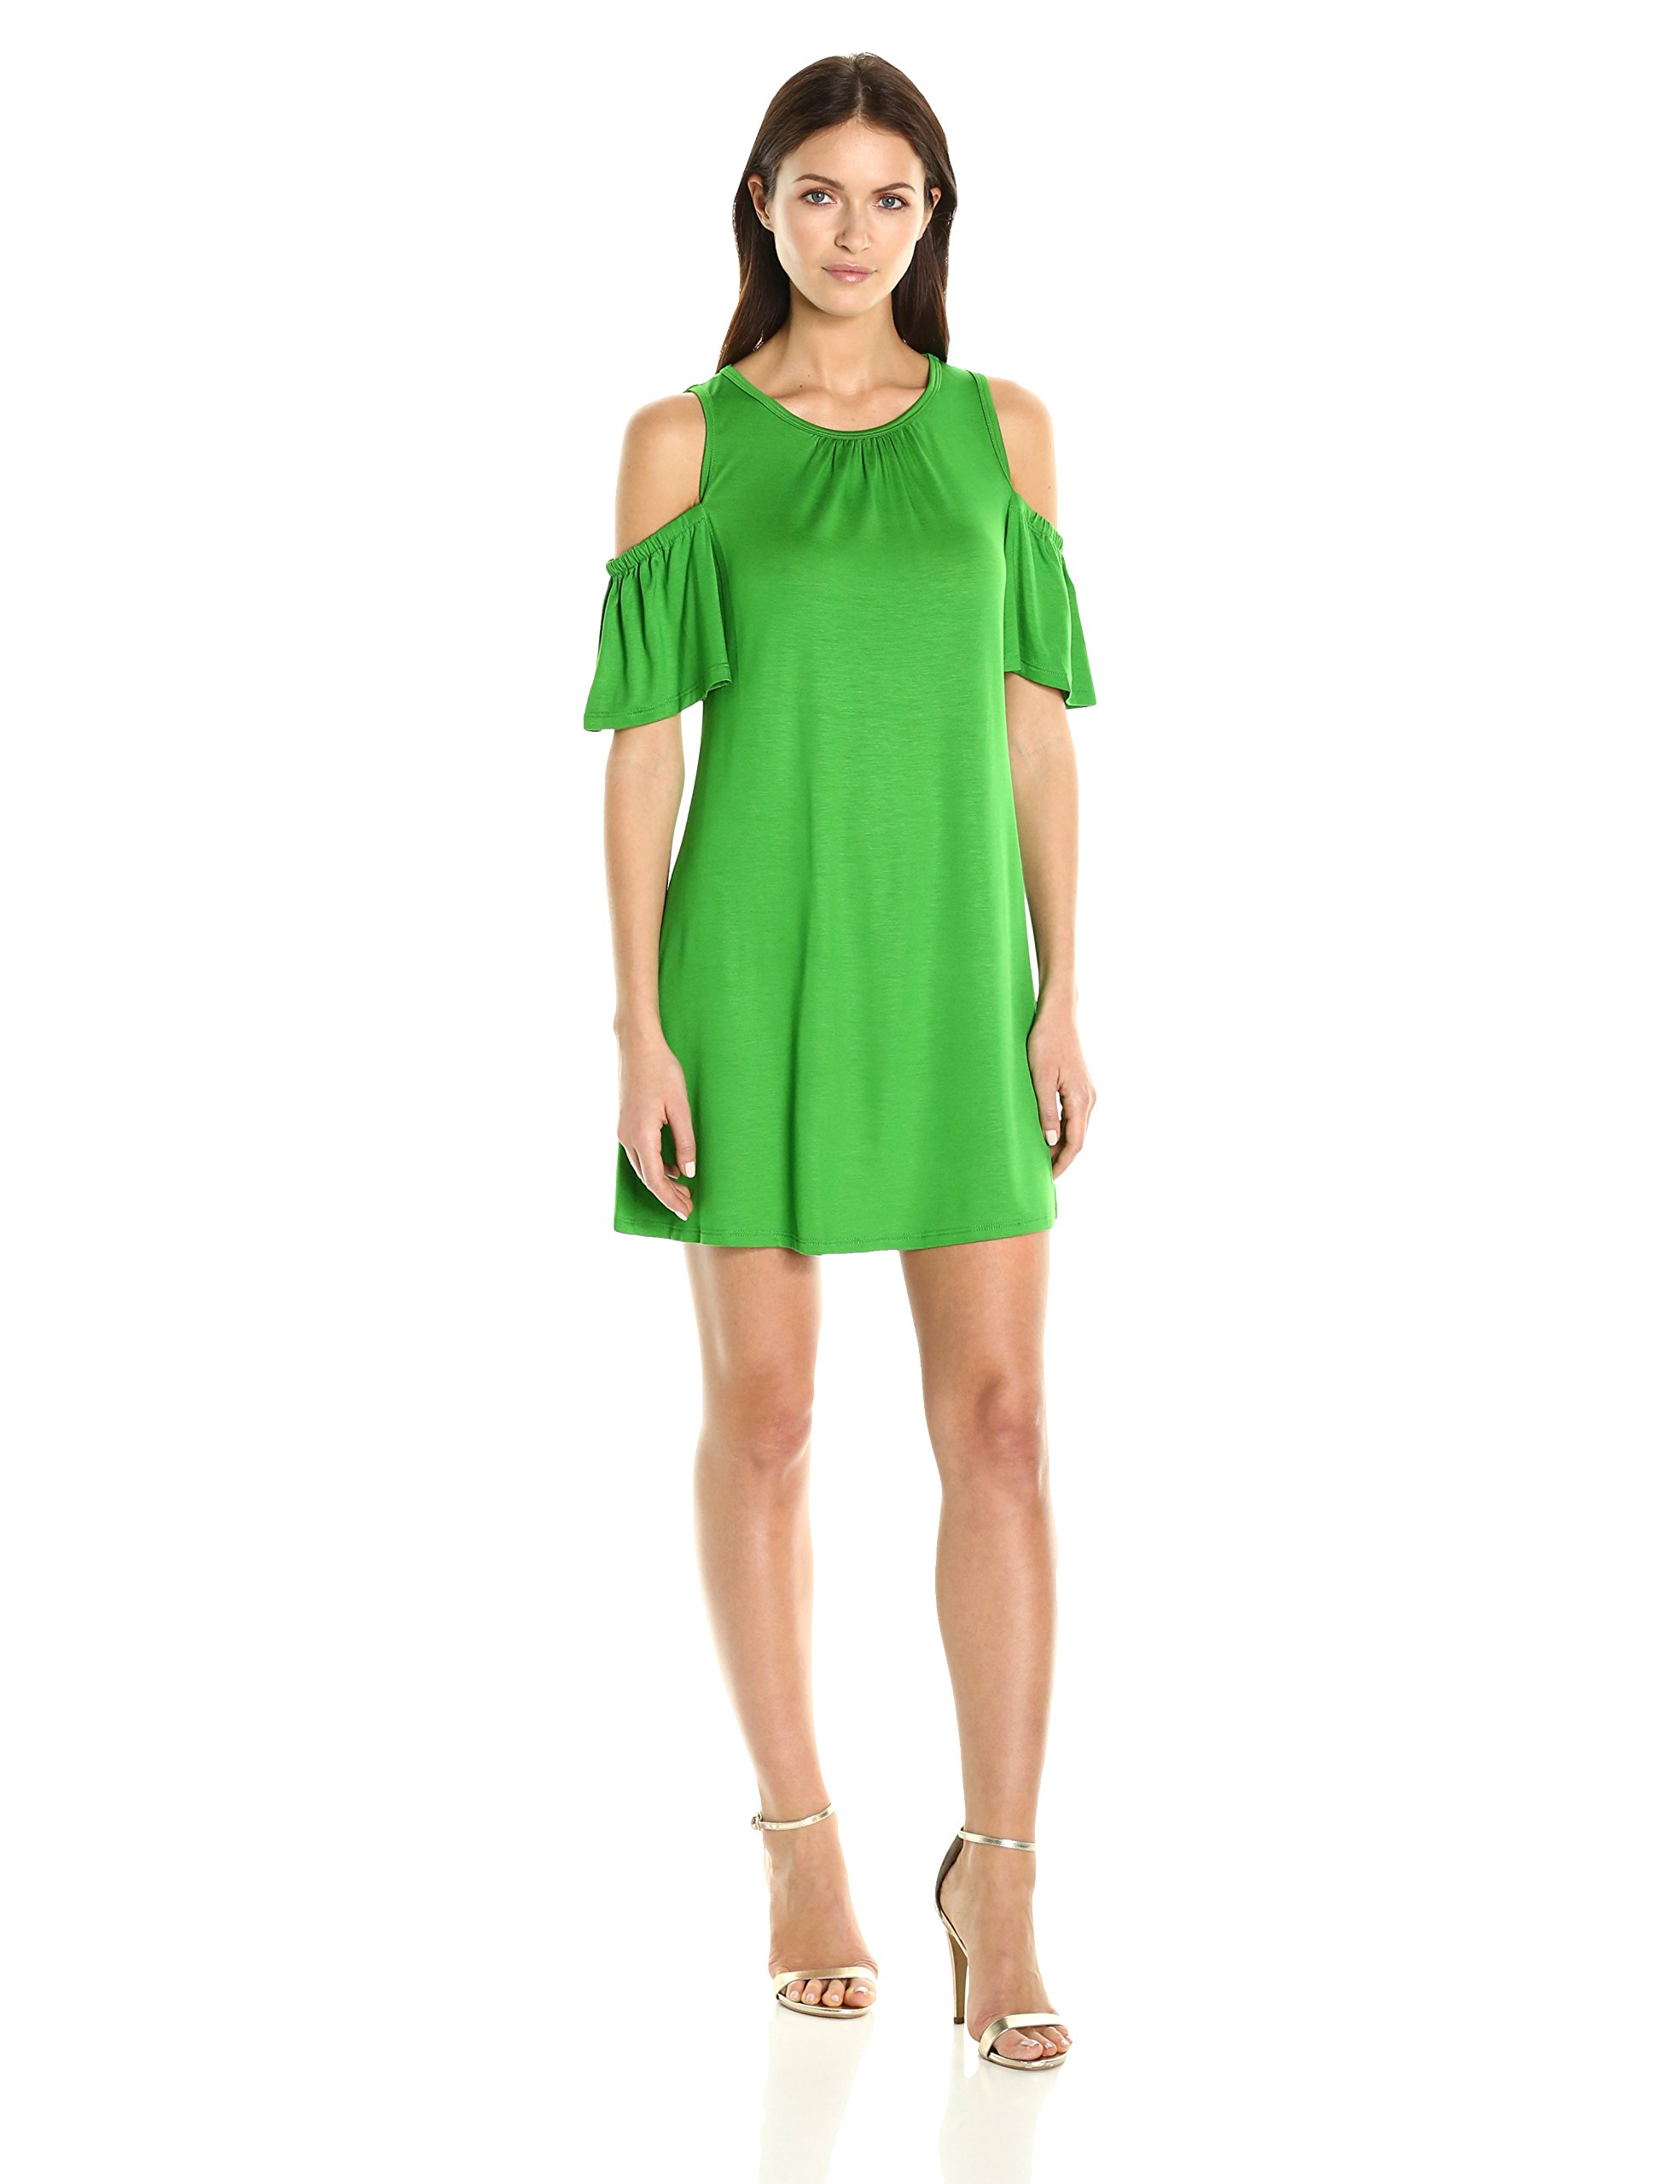 Trina Turk Women's Lianet Must Have Jersey Cold Shoulder Dress, Mojito, L